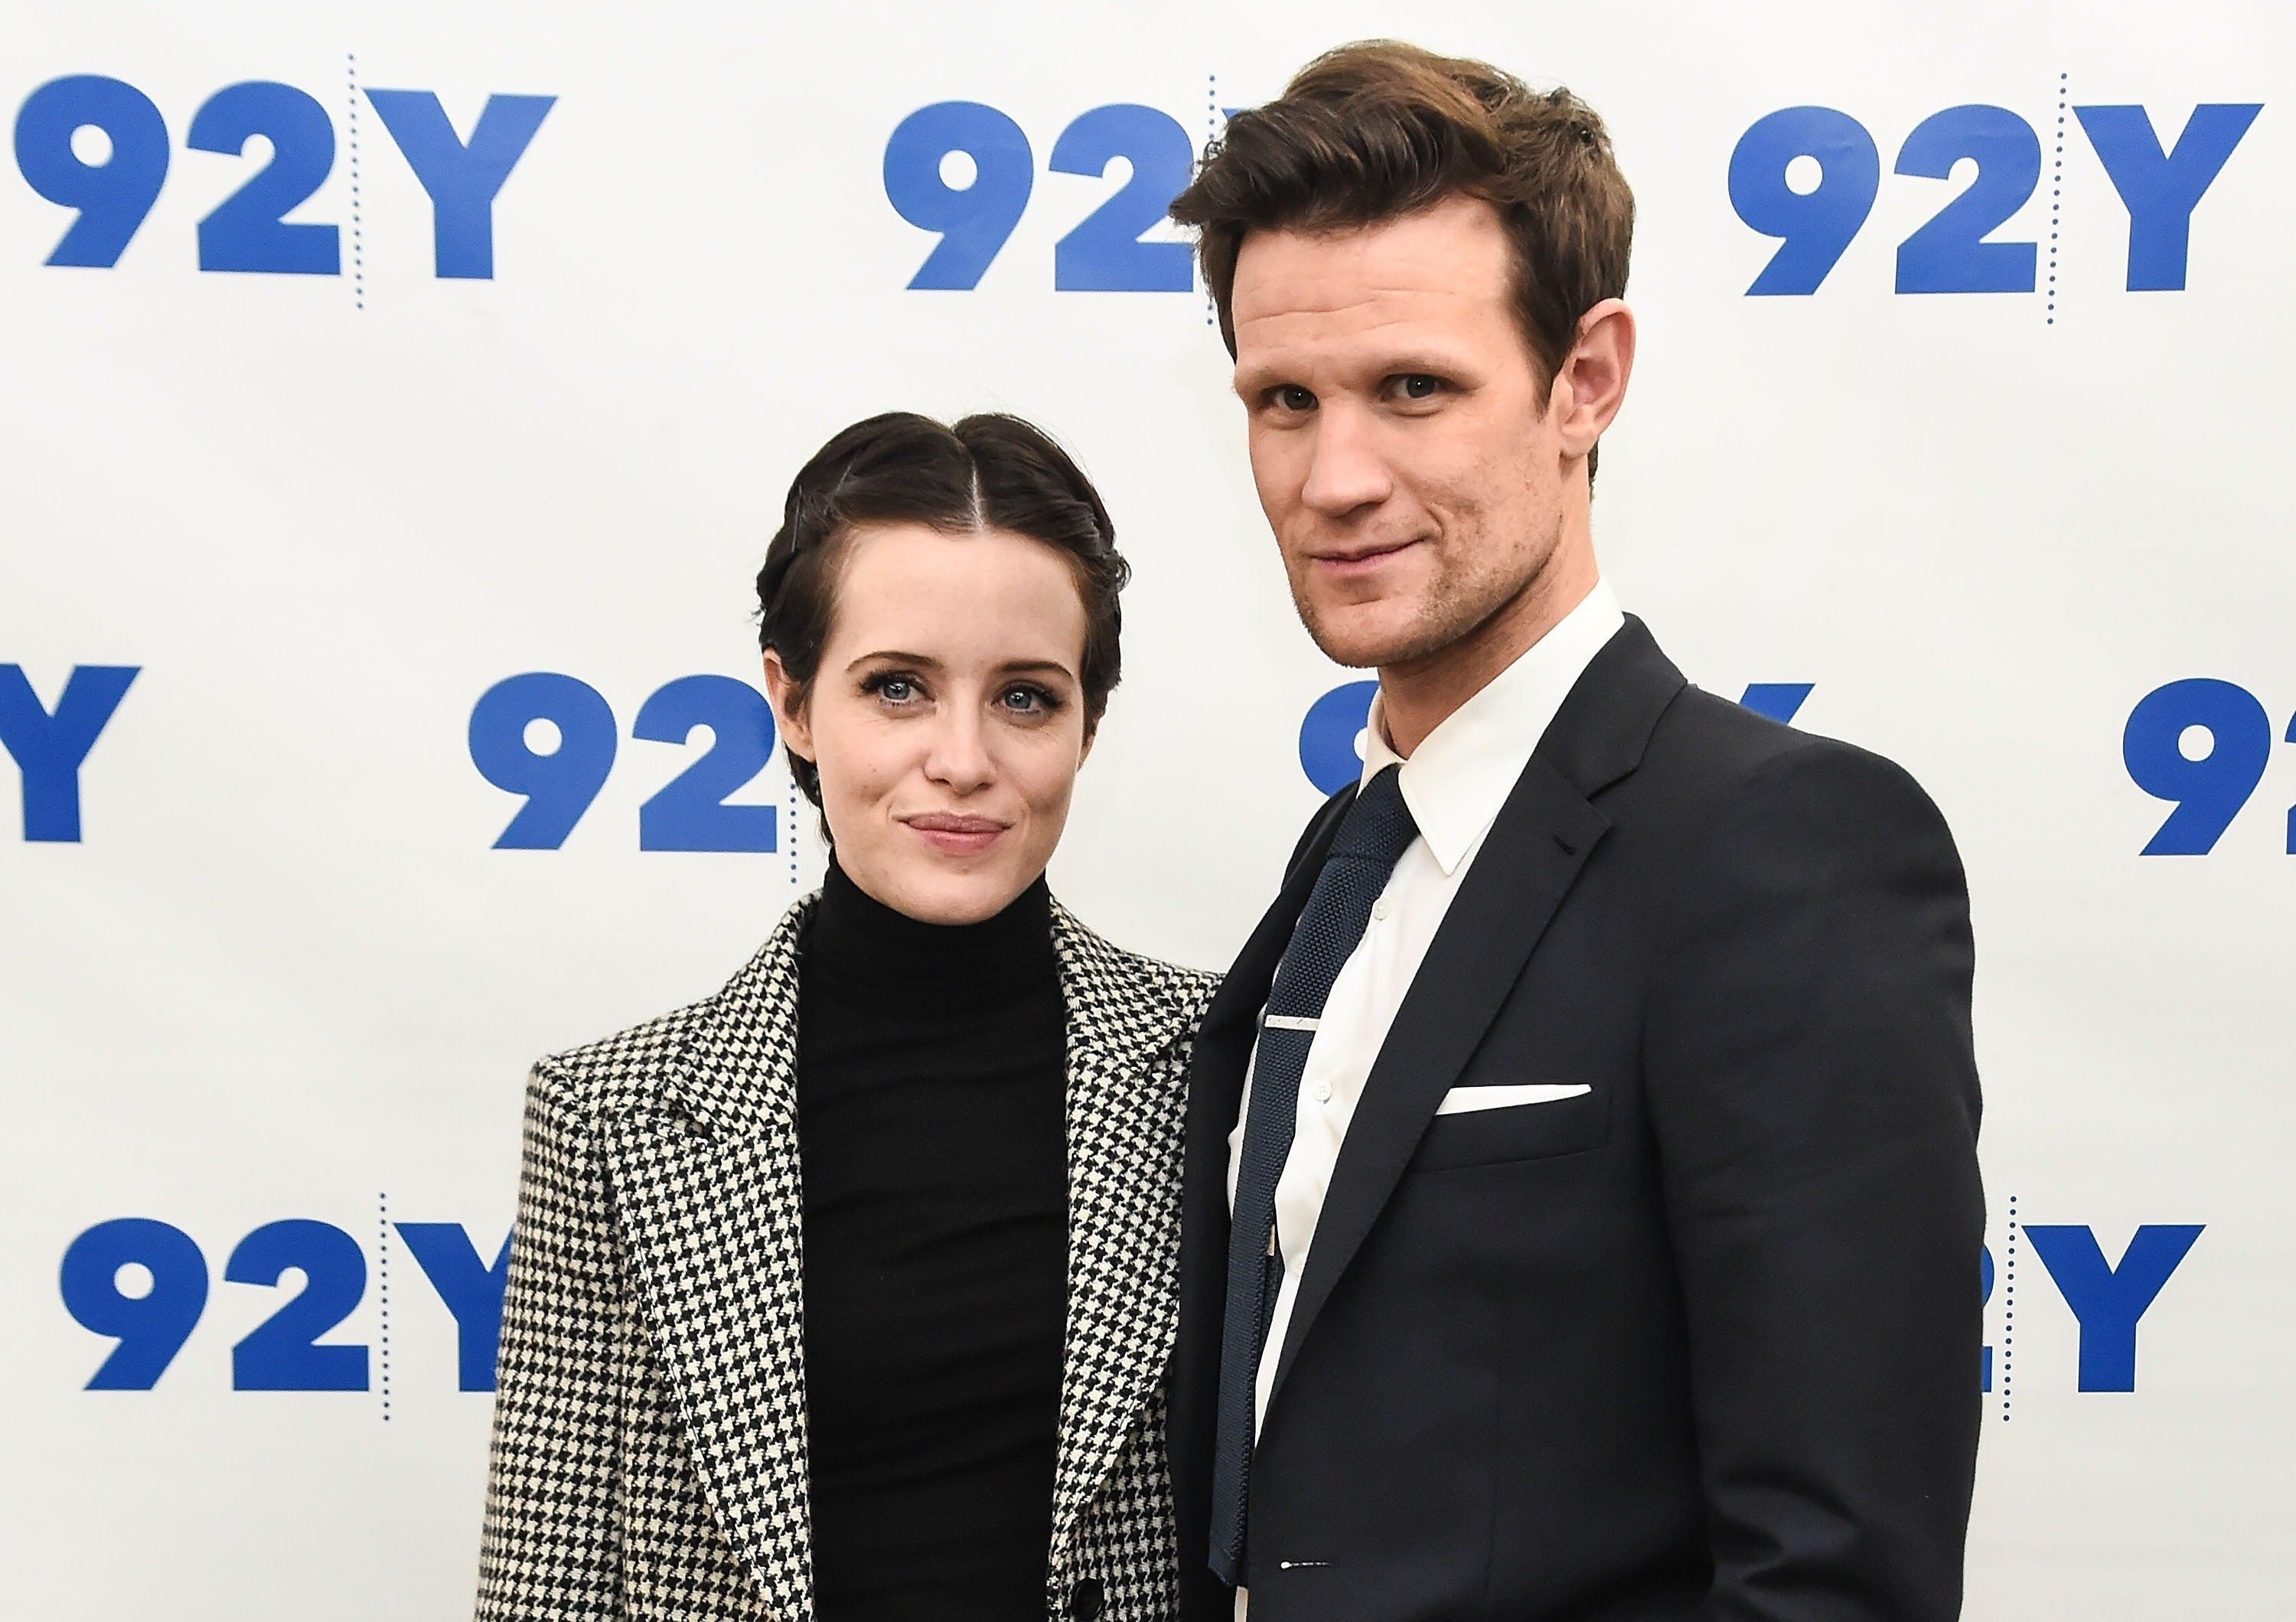 NEW YORK, NY - DECEMBER 04:  Claire Foy and Matt Smith attend the screening of 'The Crown' at 92nd Street Y on December 4, 2017 in New York City.  (Photo by Daniel Zuchnik/Getty Images)